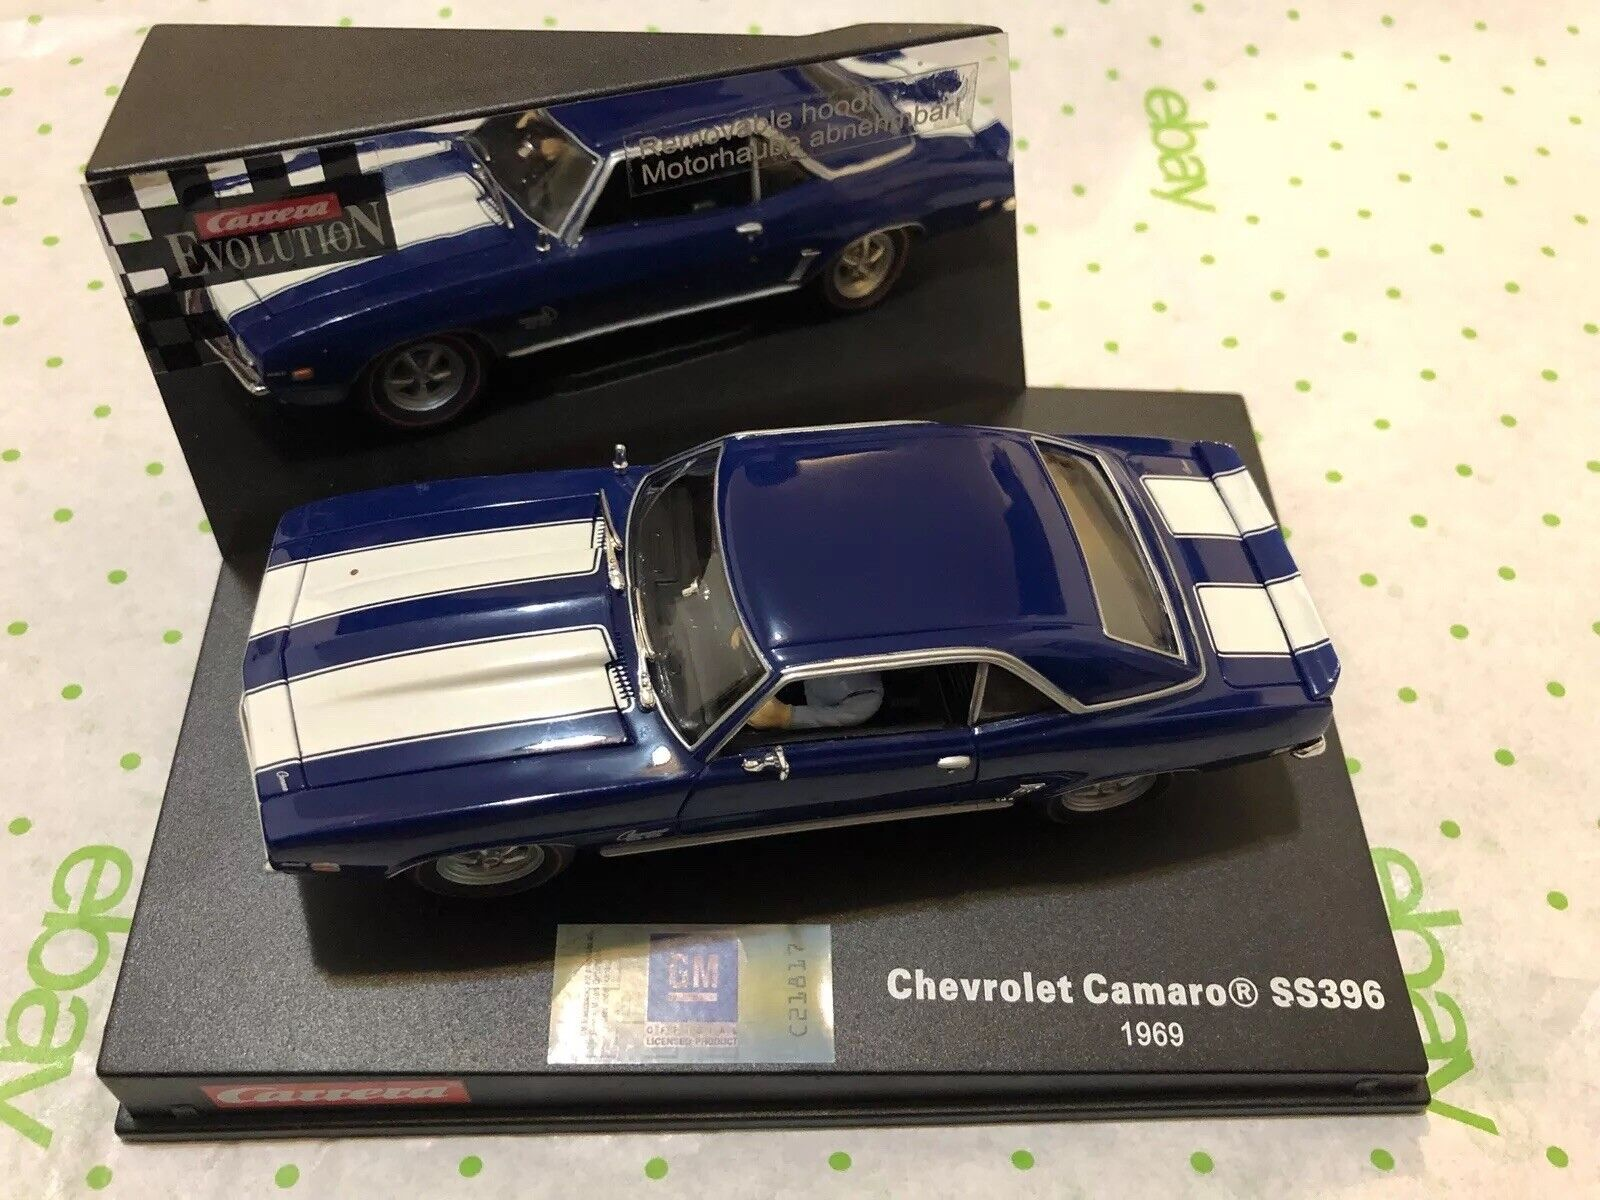 Carrera Evolution Chevrolet Camaro SS396 1969 - Removable Hood